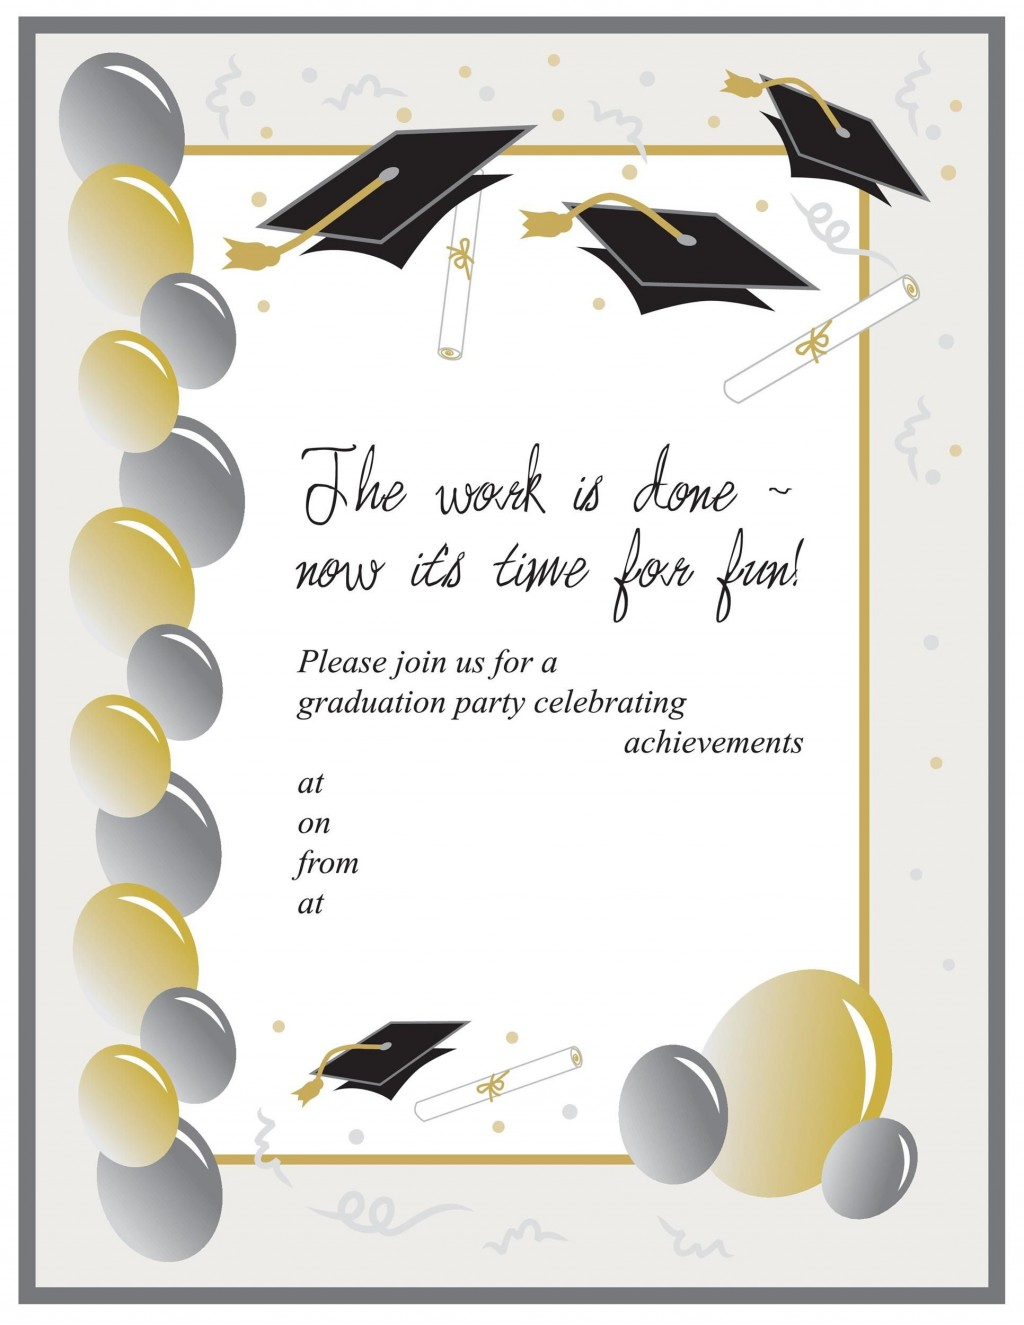 008 Formidable Free Printable Graduation Invitation Template Example  Party For WordLarge